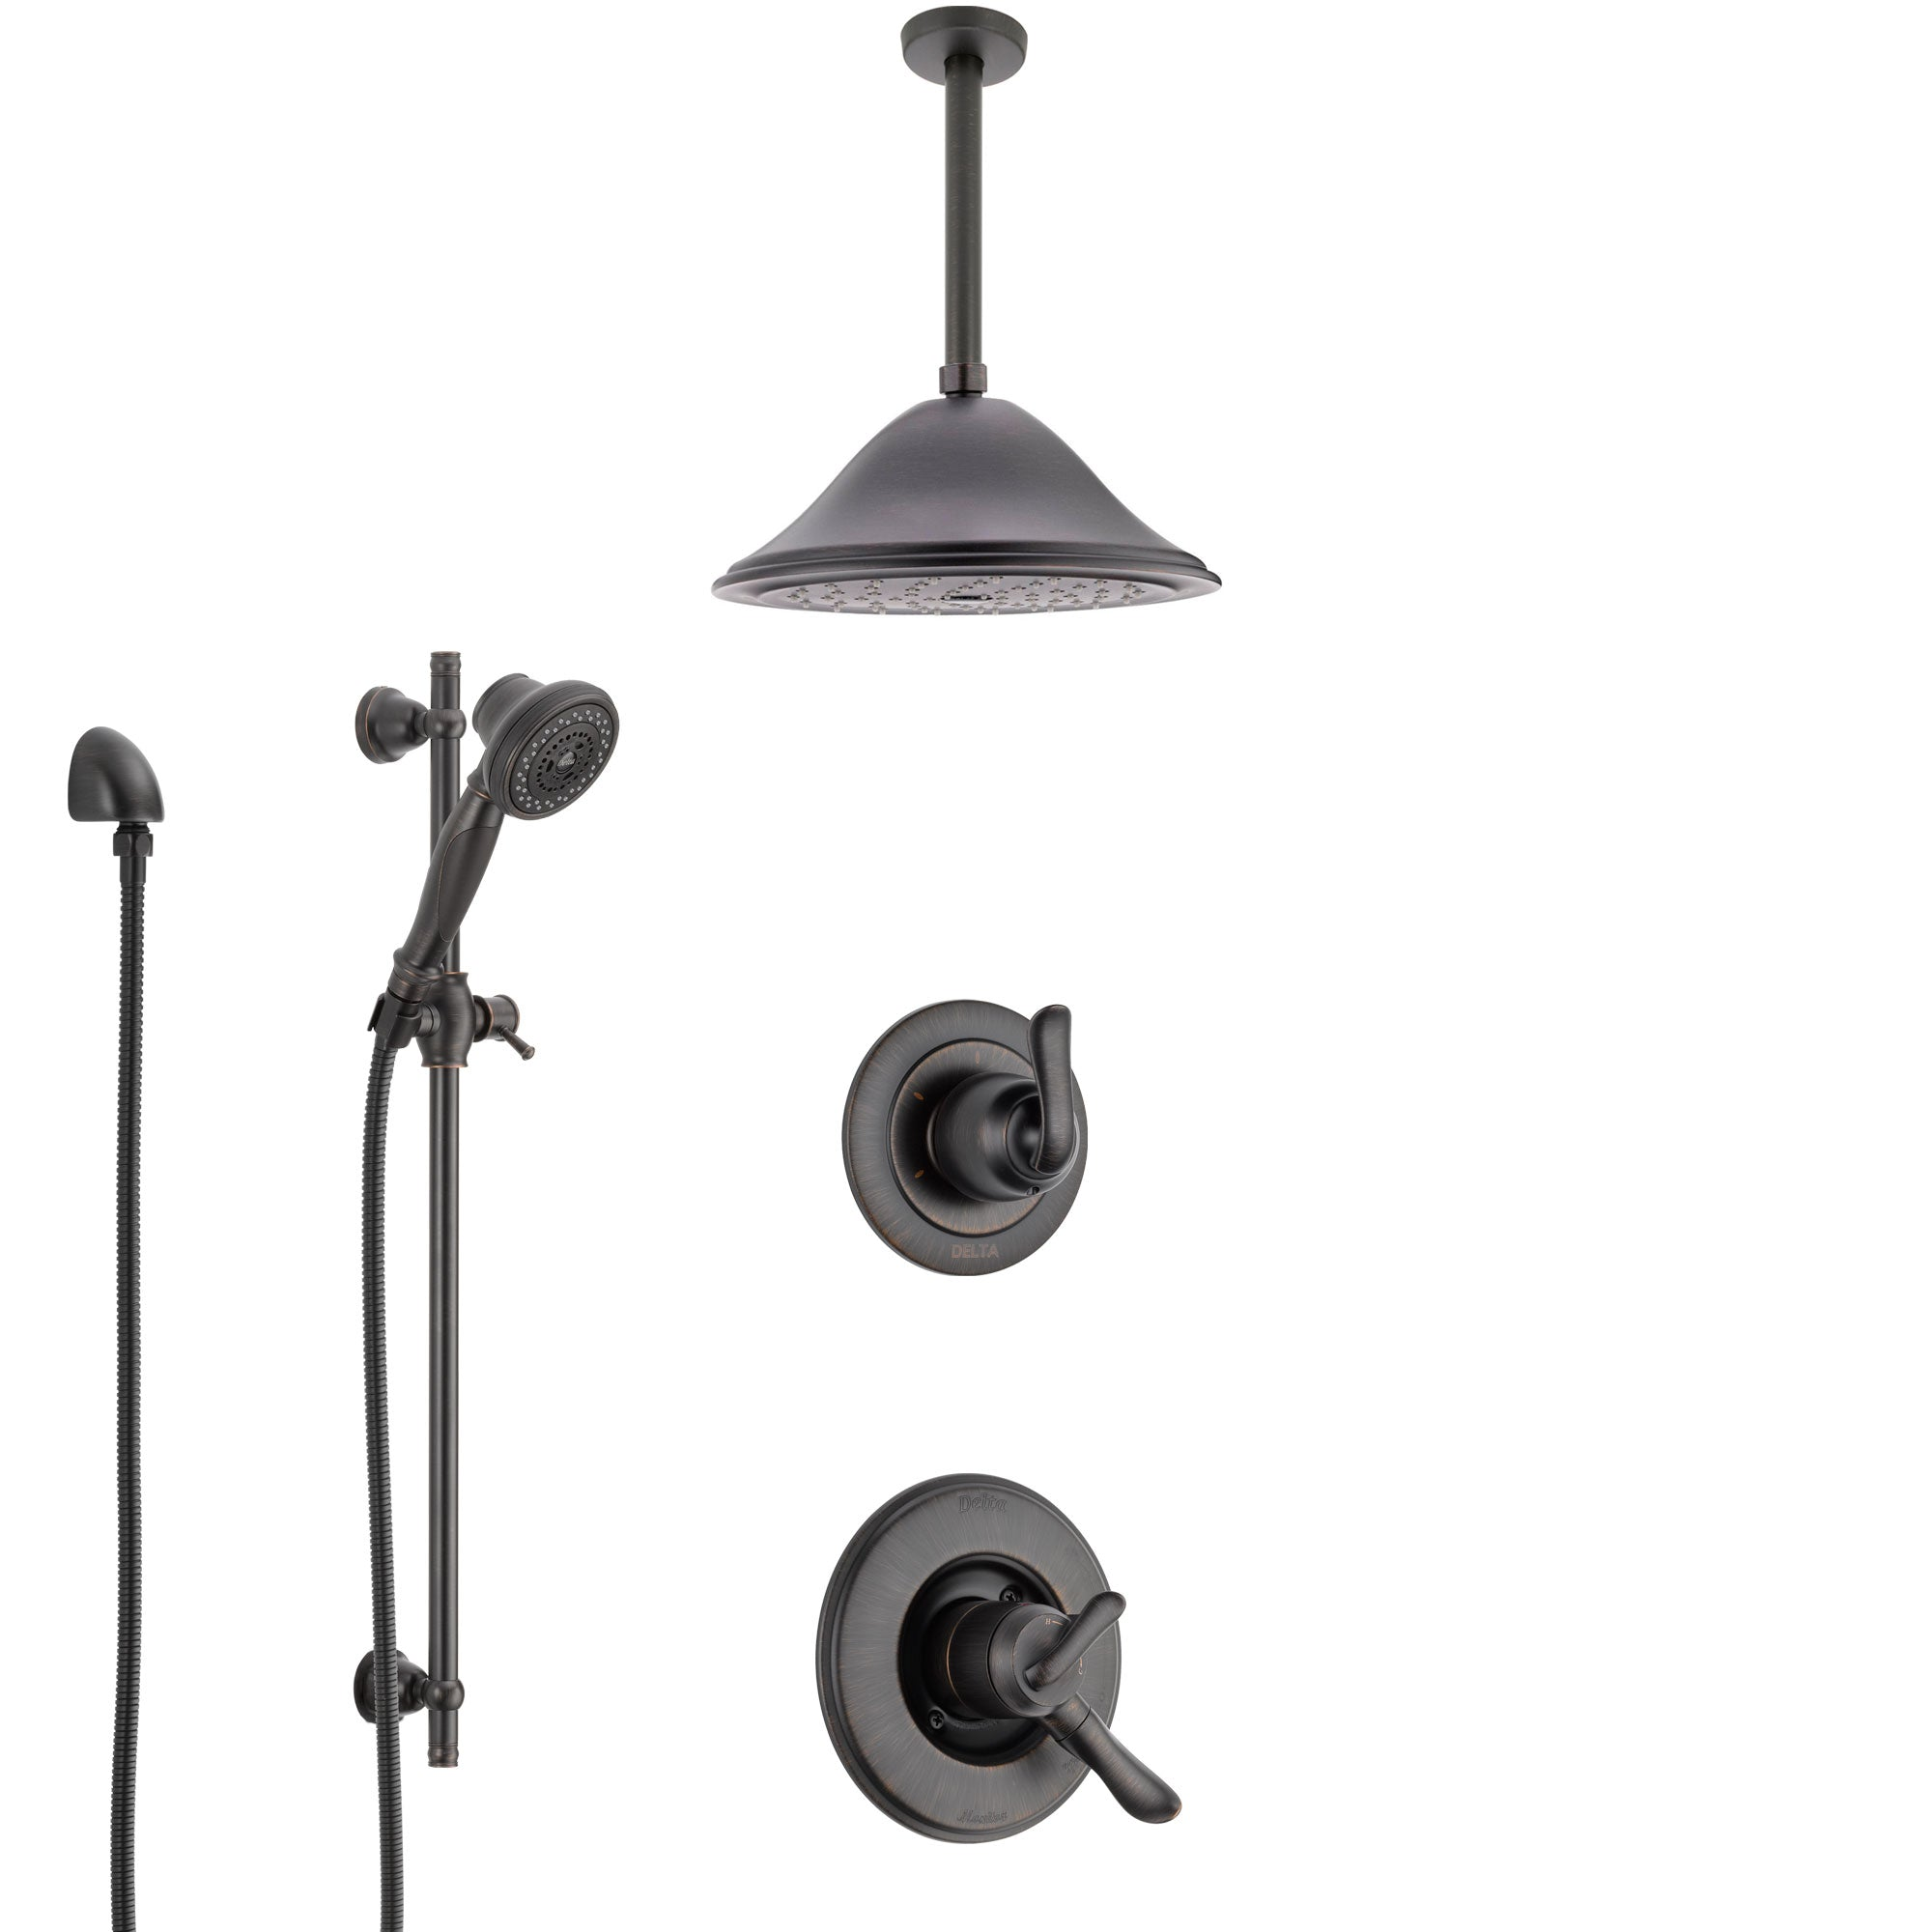 Delta Linden Venetian Bronze Shower System with Dual Control Handle, Diverter, Ceiling Mount Showerhead, and Hand Shower with Slidebar SS1794RB4